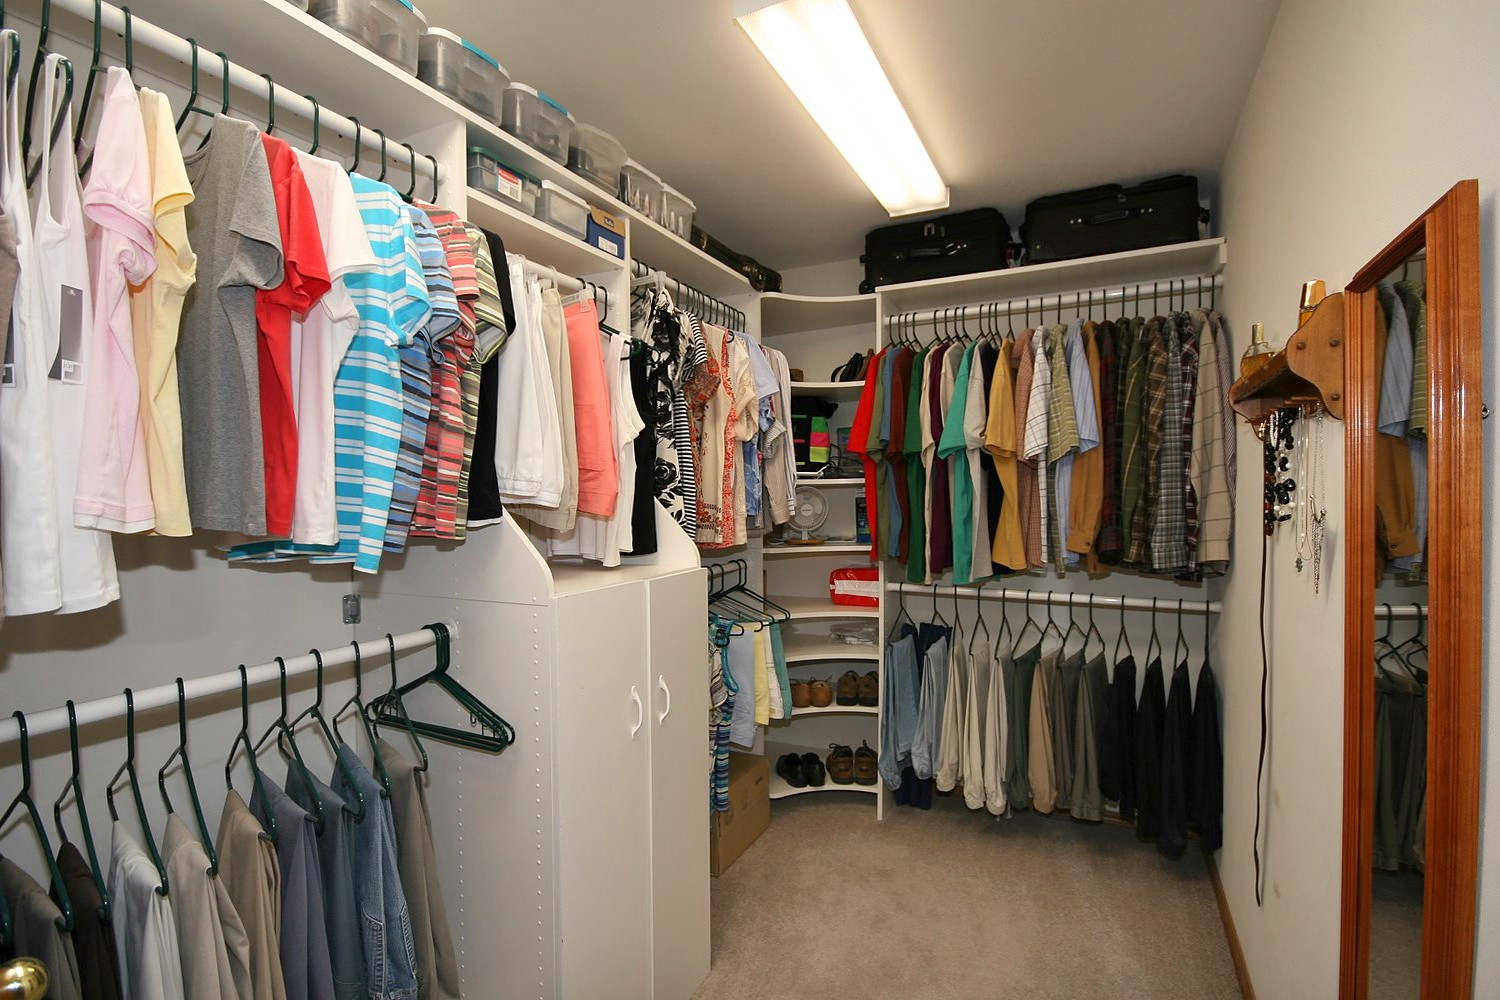 Diy Walk in Closet | Build Closet Organizer | How to Build Your Own Closet Organizer